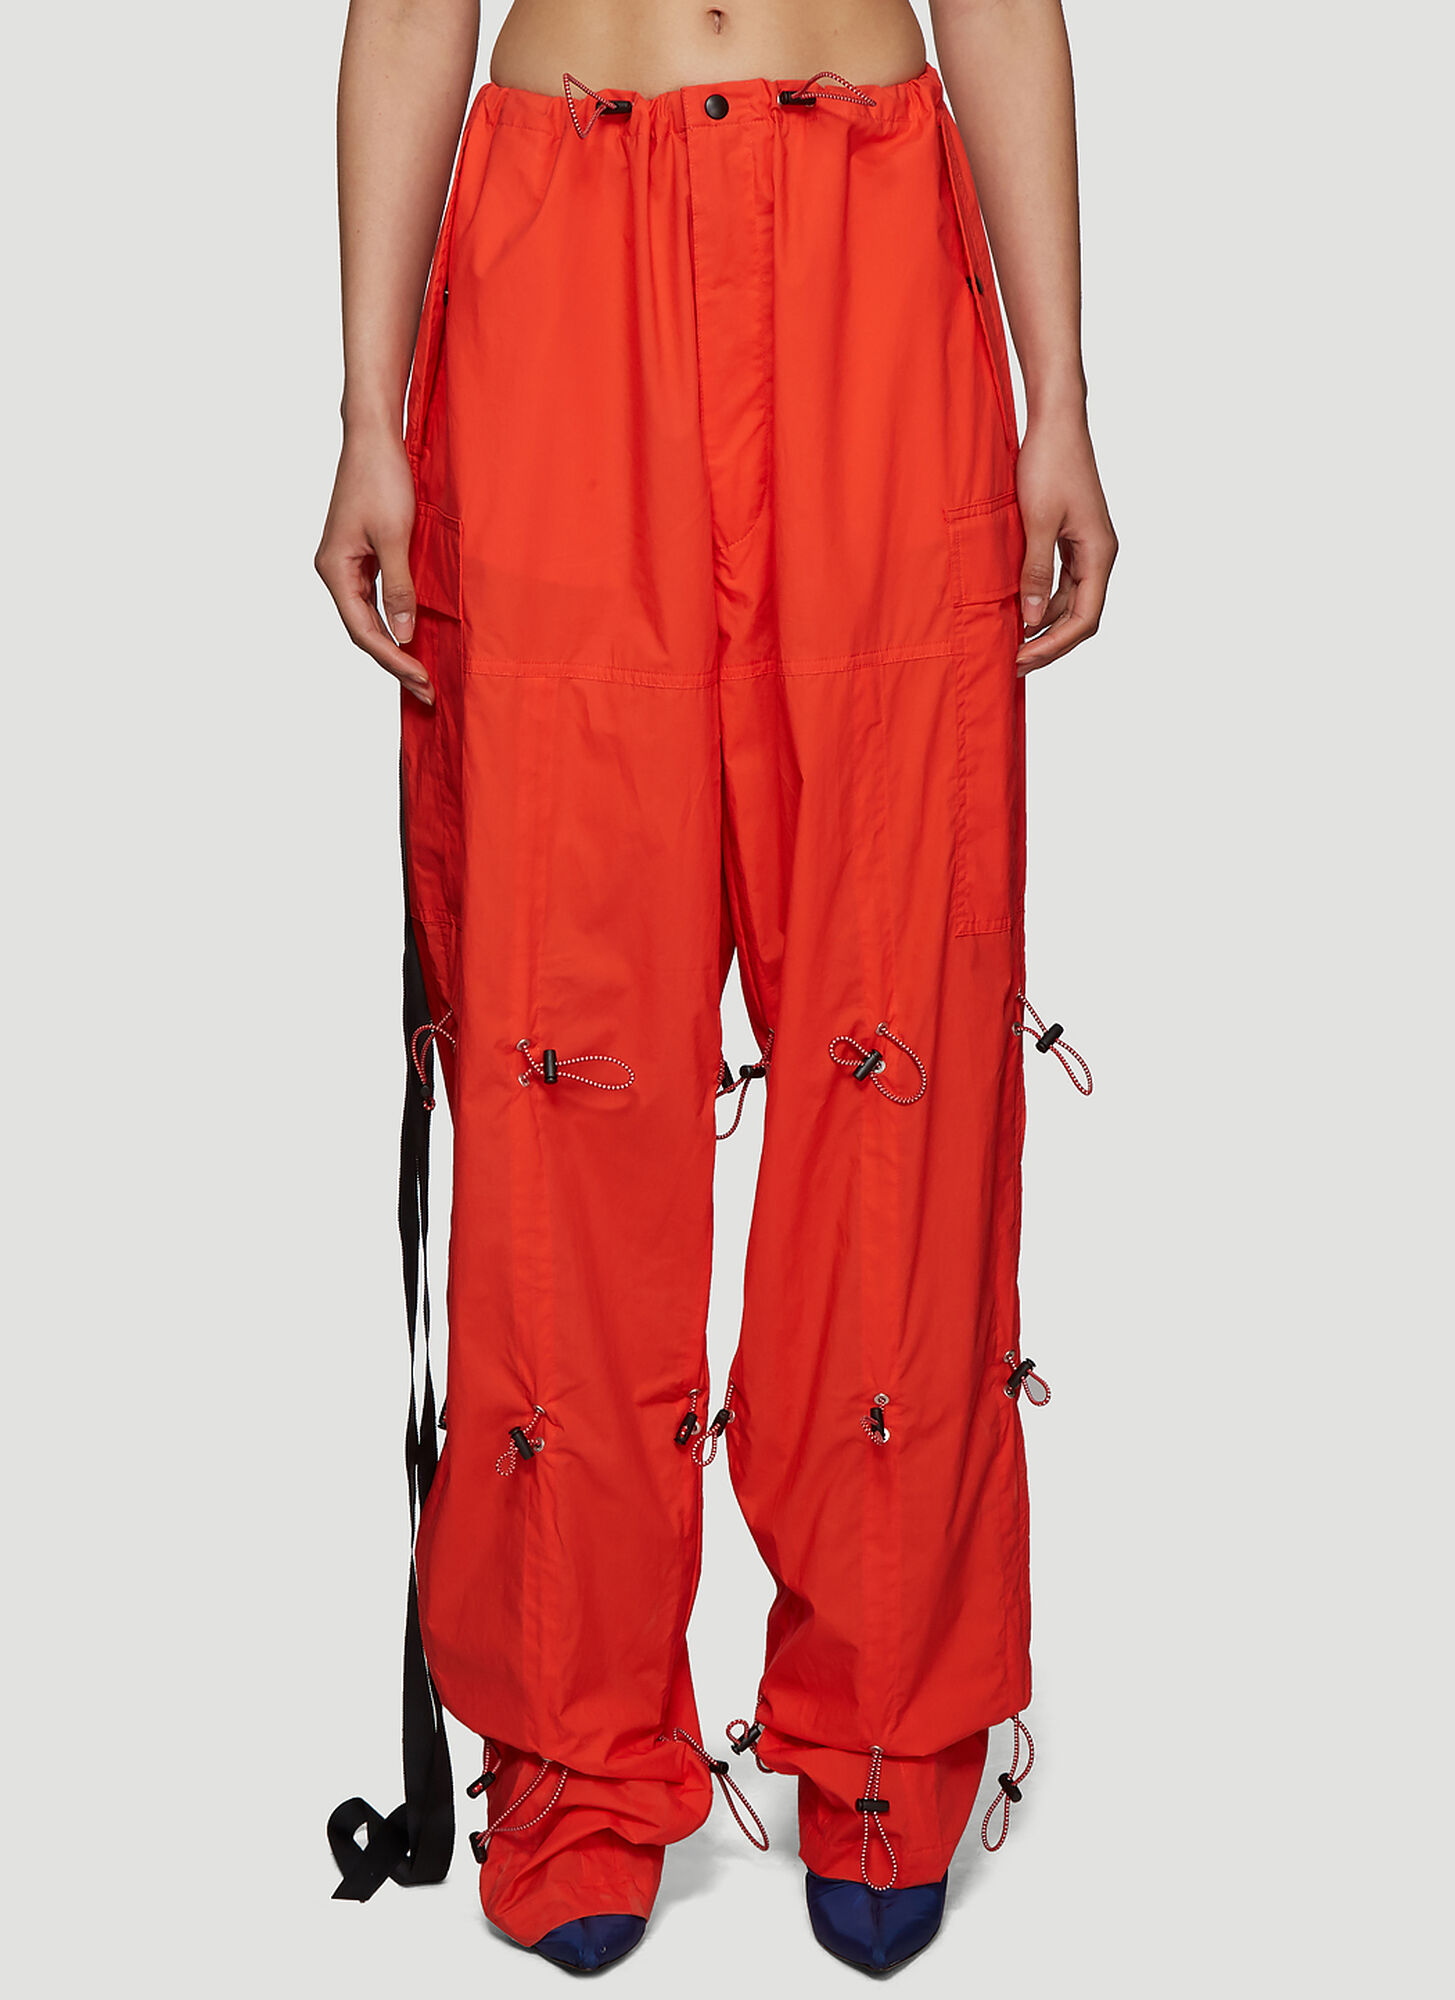 Photo of Unravel Project Hybrid Drawstring Pants in Red - Unravel Project Pants